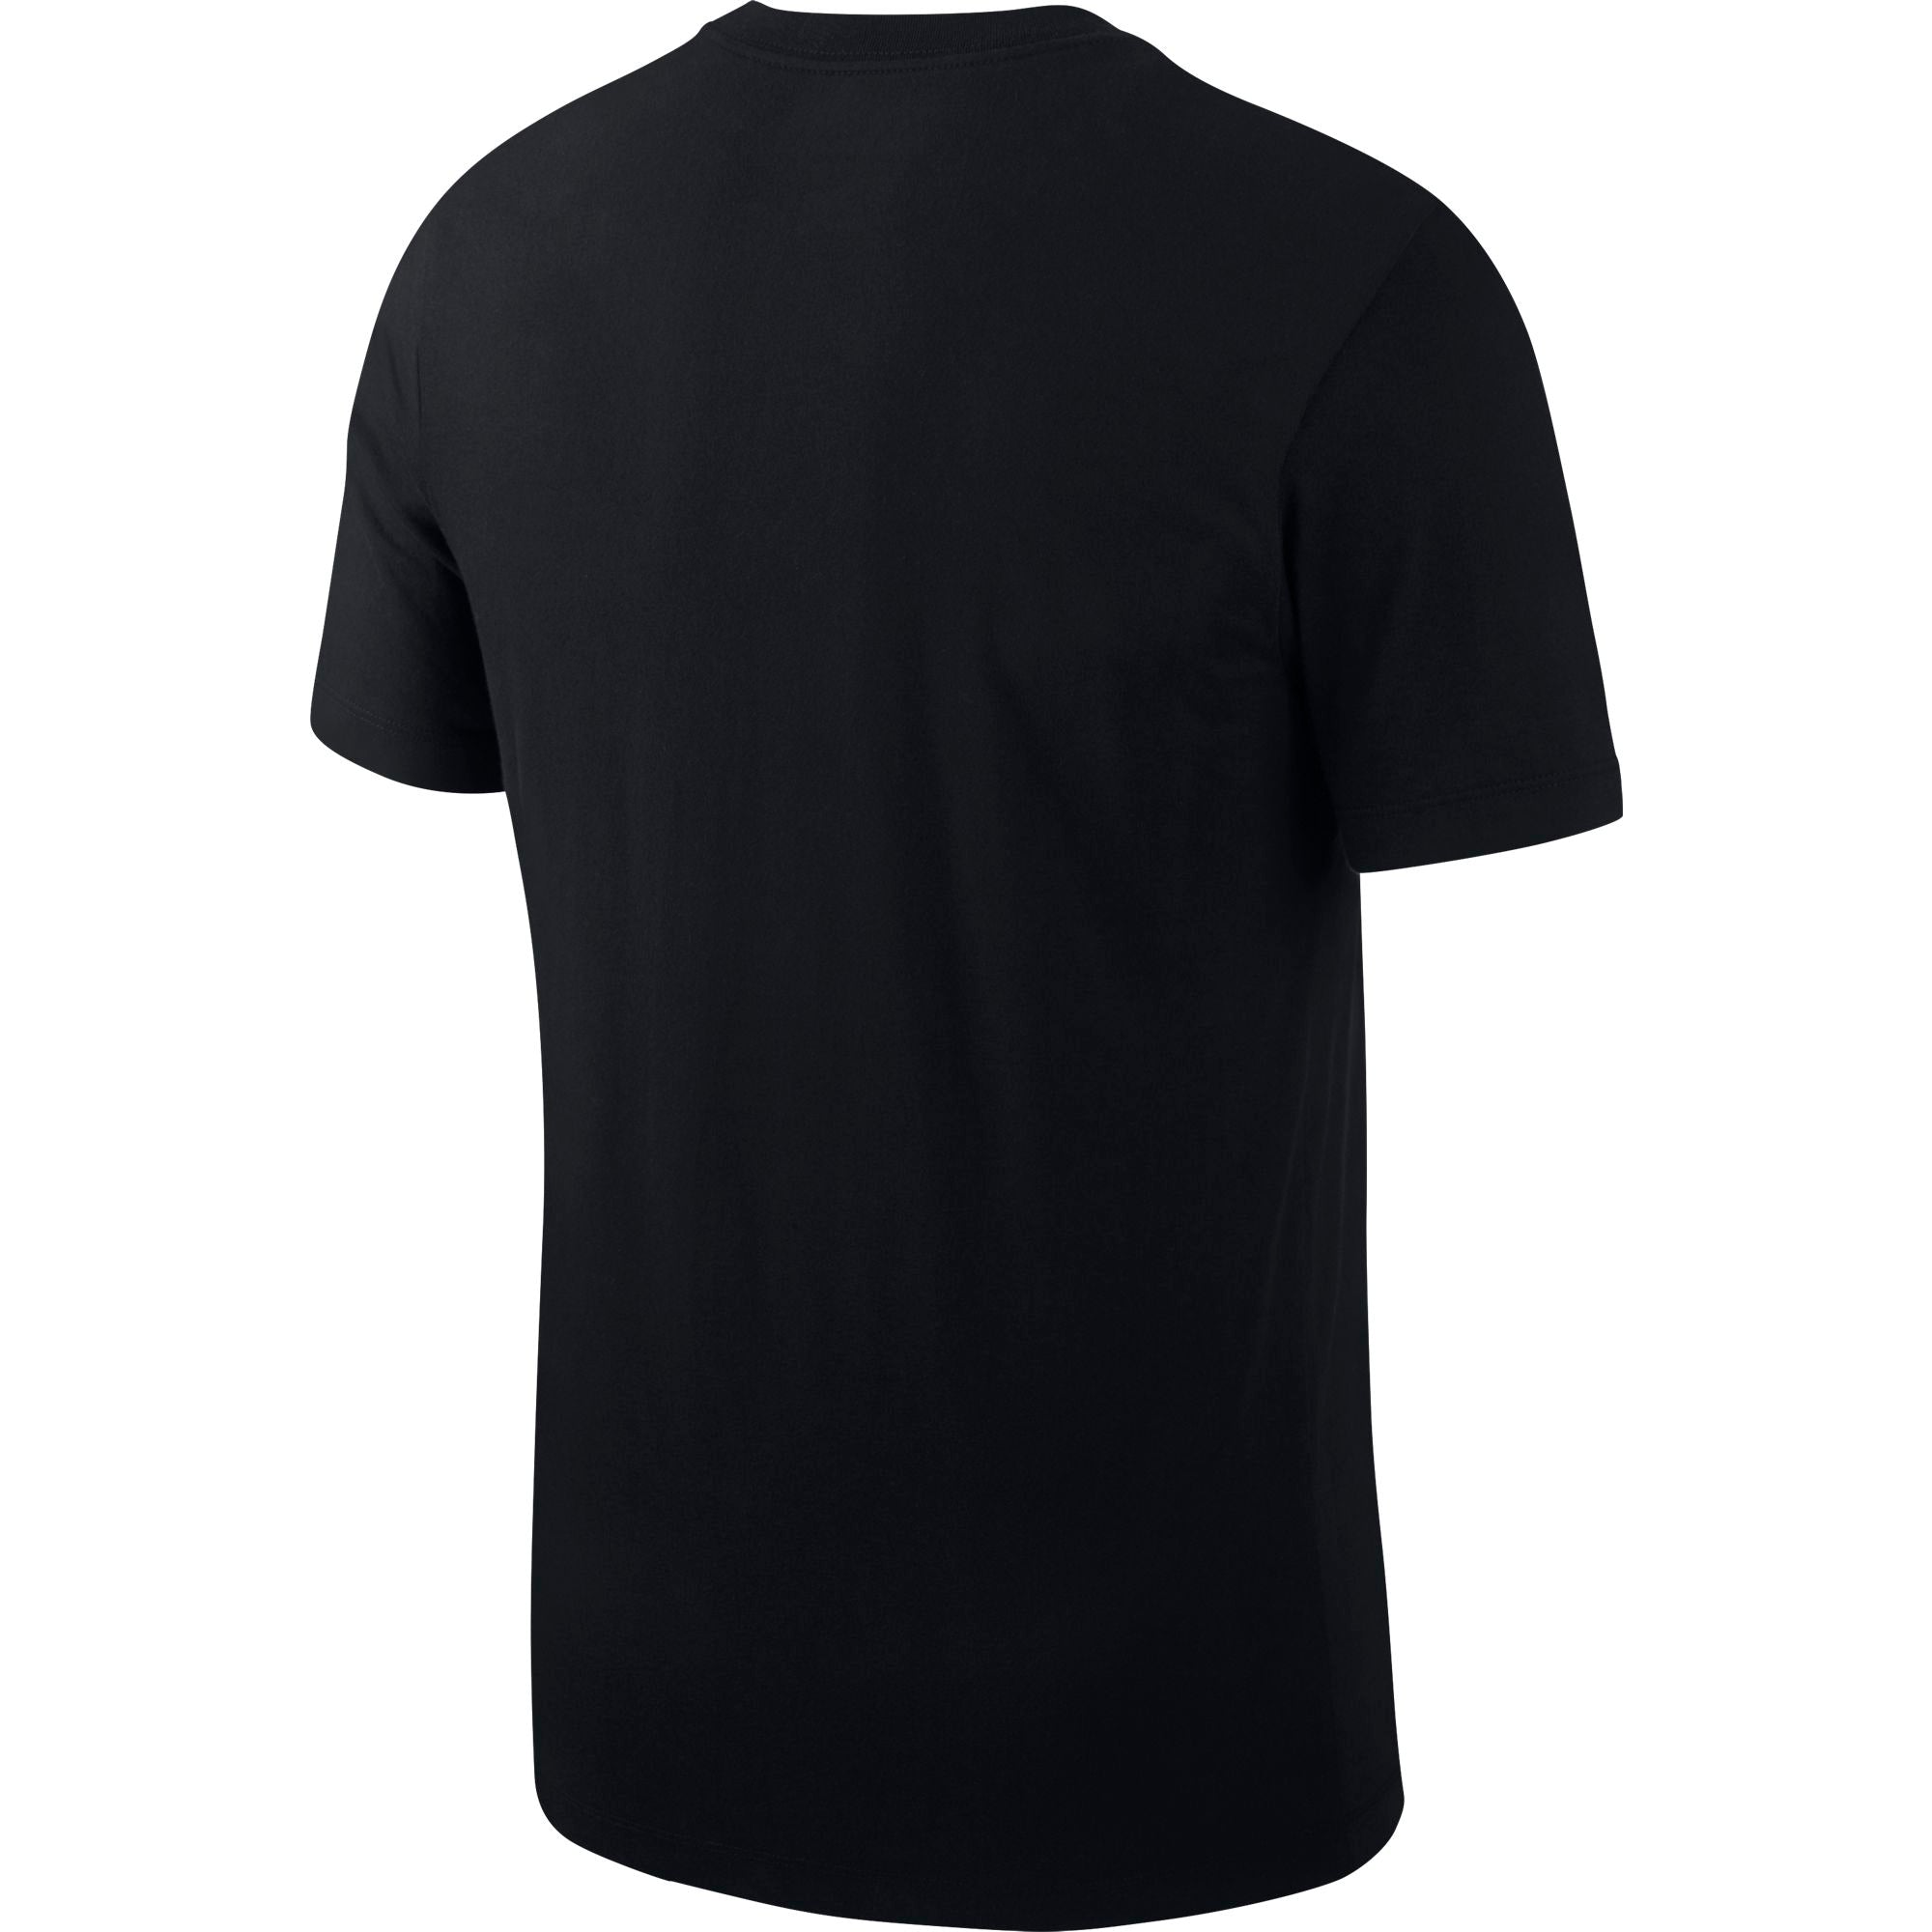 Nike Basketball Dri-Fit HBR Marble Tee - Black